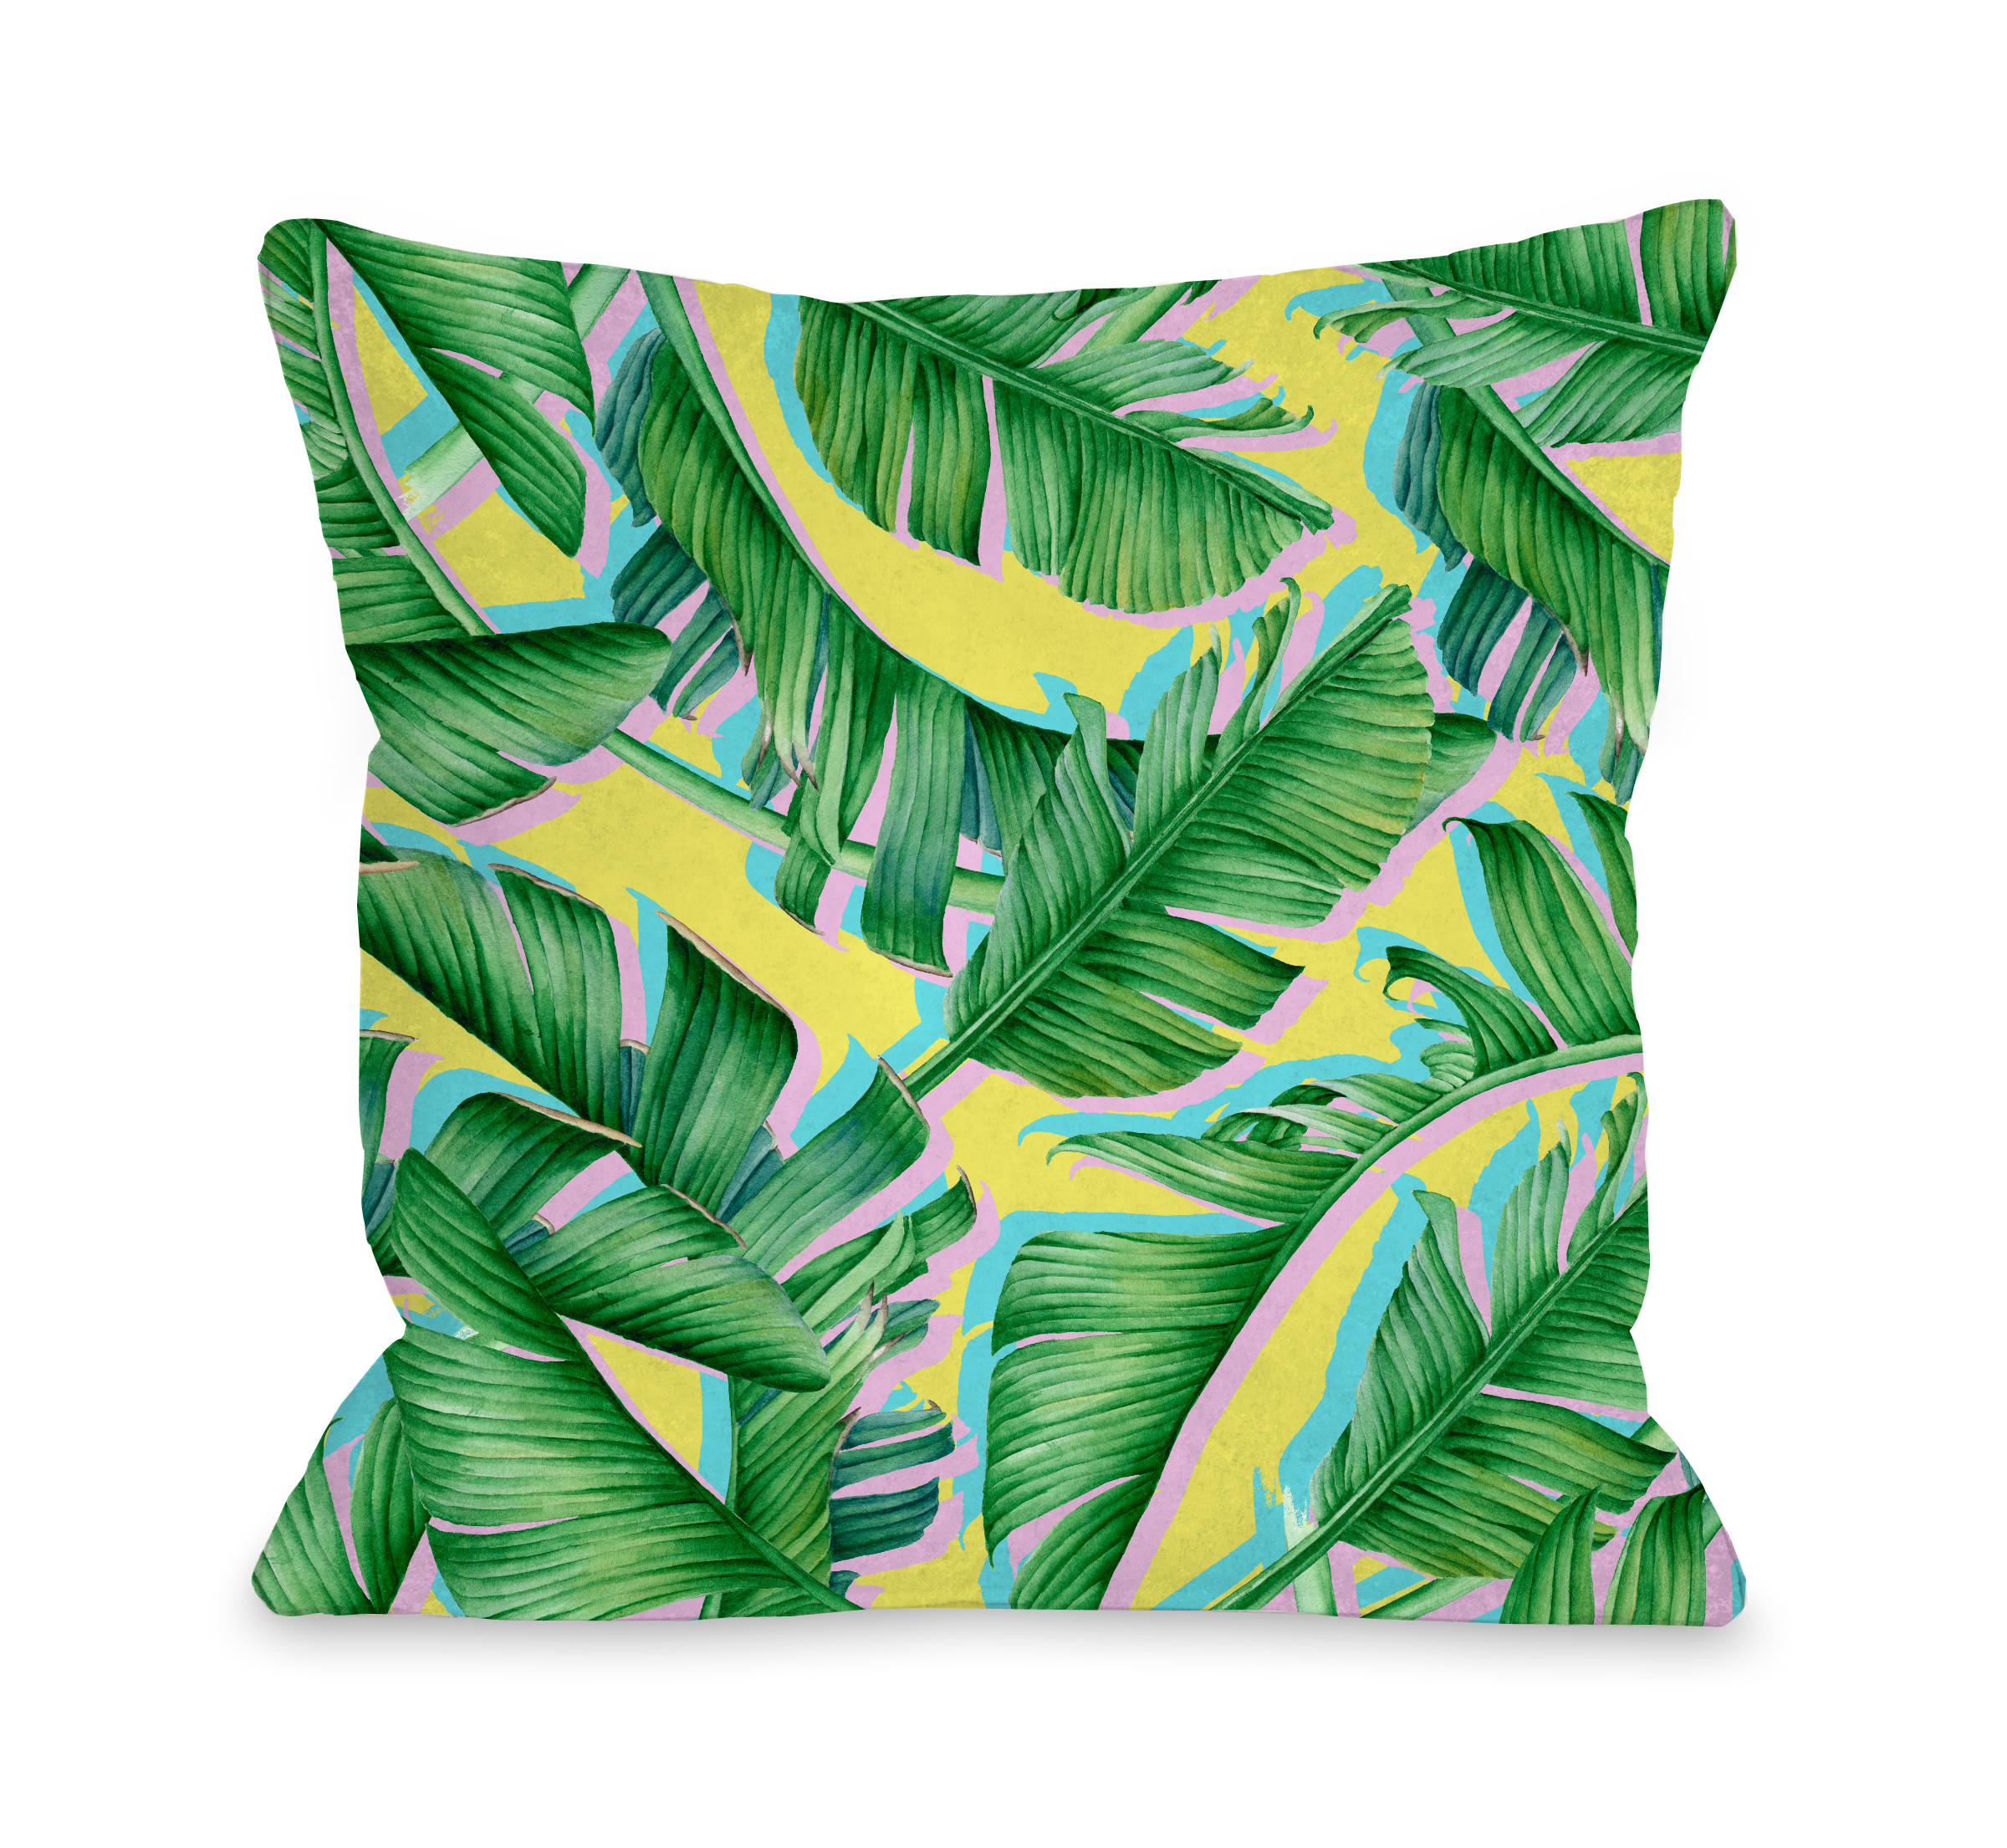 Palm Pops - Green 18x18 Pillow by OBC